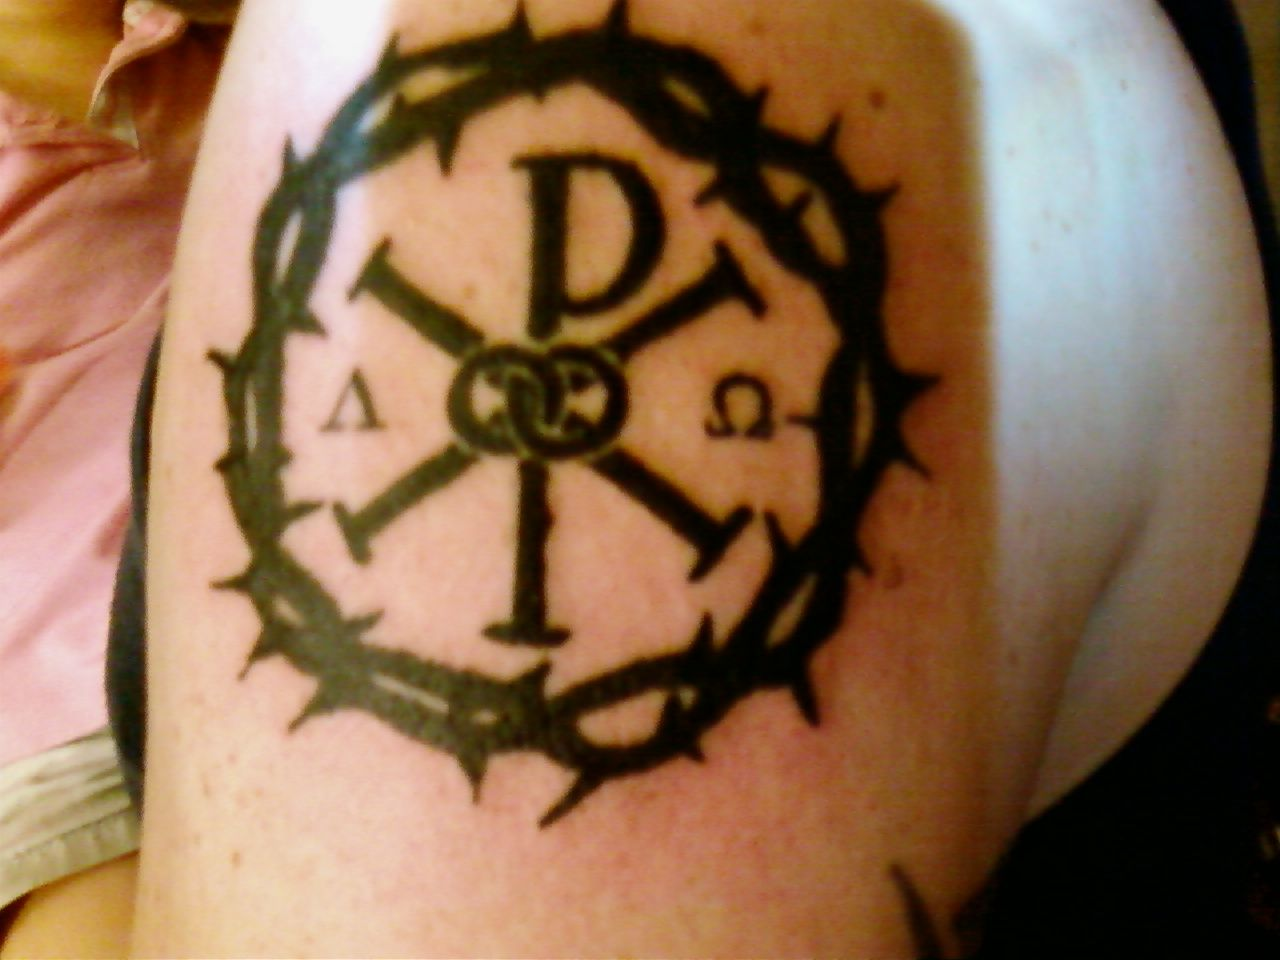 chi rho and crown of thorns body art ideas pinterest chi rho crown and tattoo. Black Bedroom Furniture Sets. Home Design Ideas